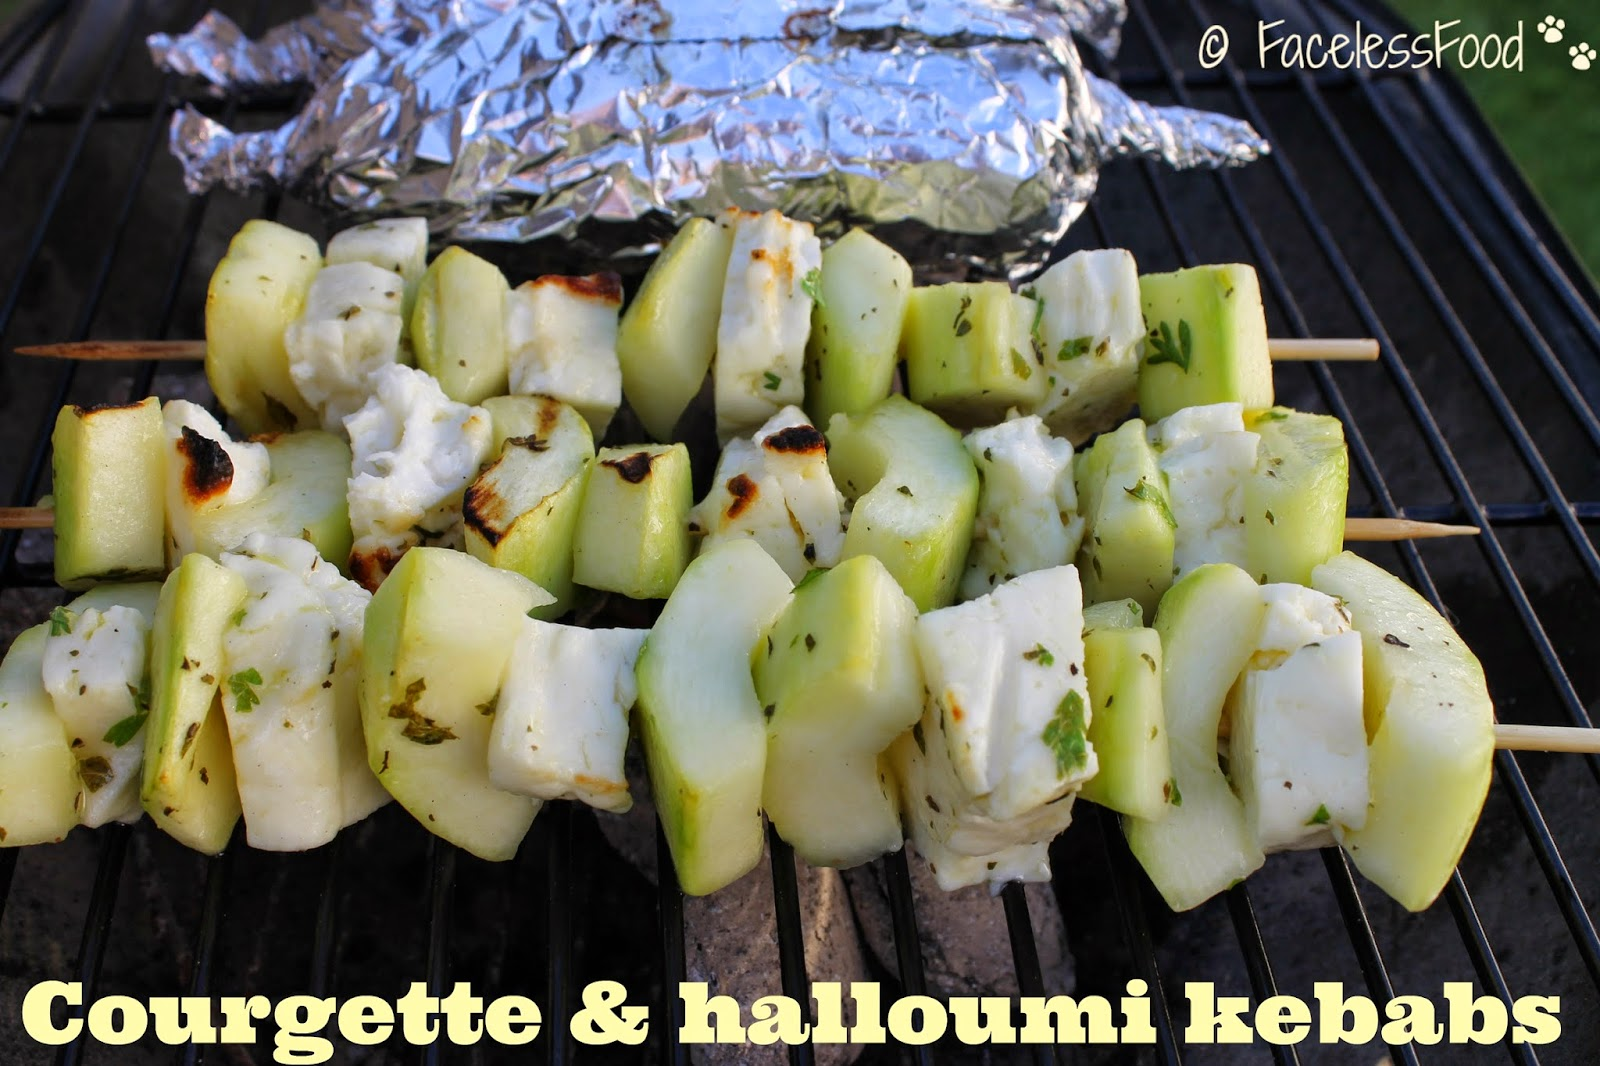 Courgette & halloumi kebabs